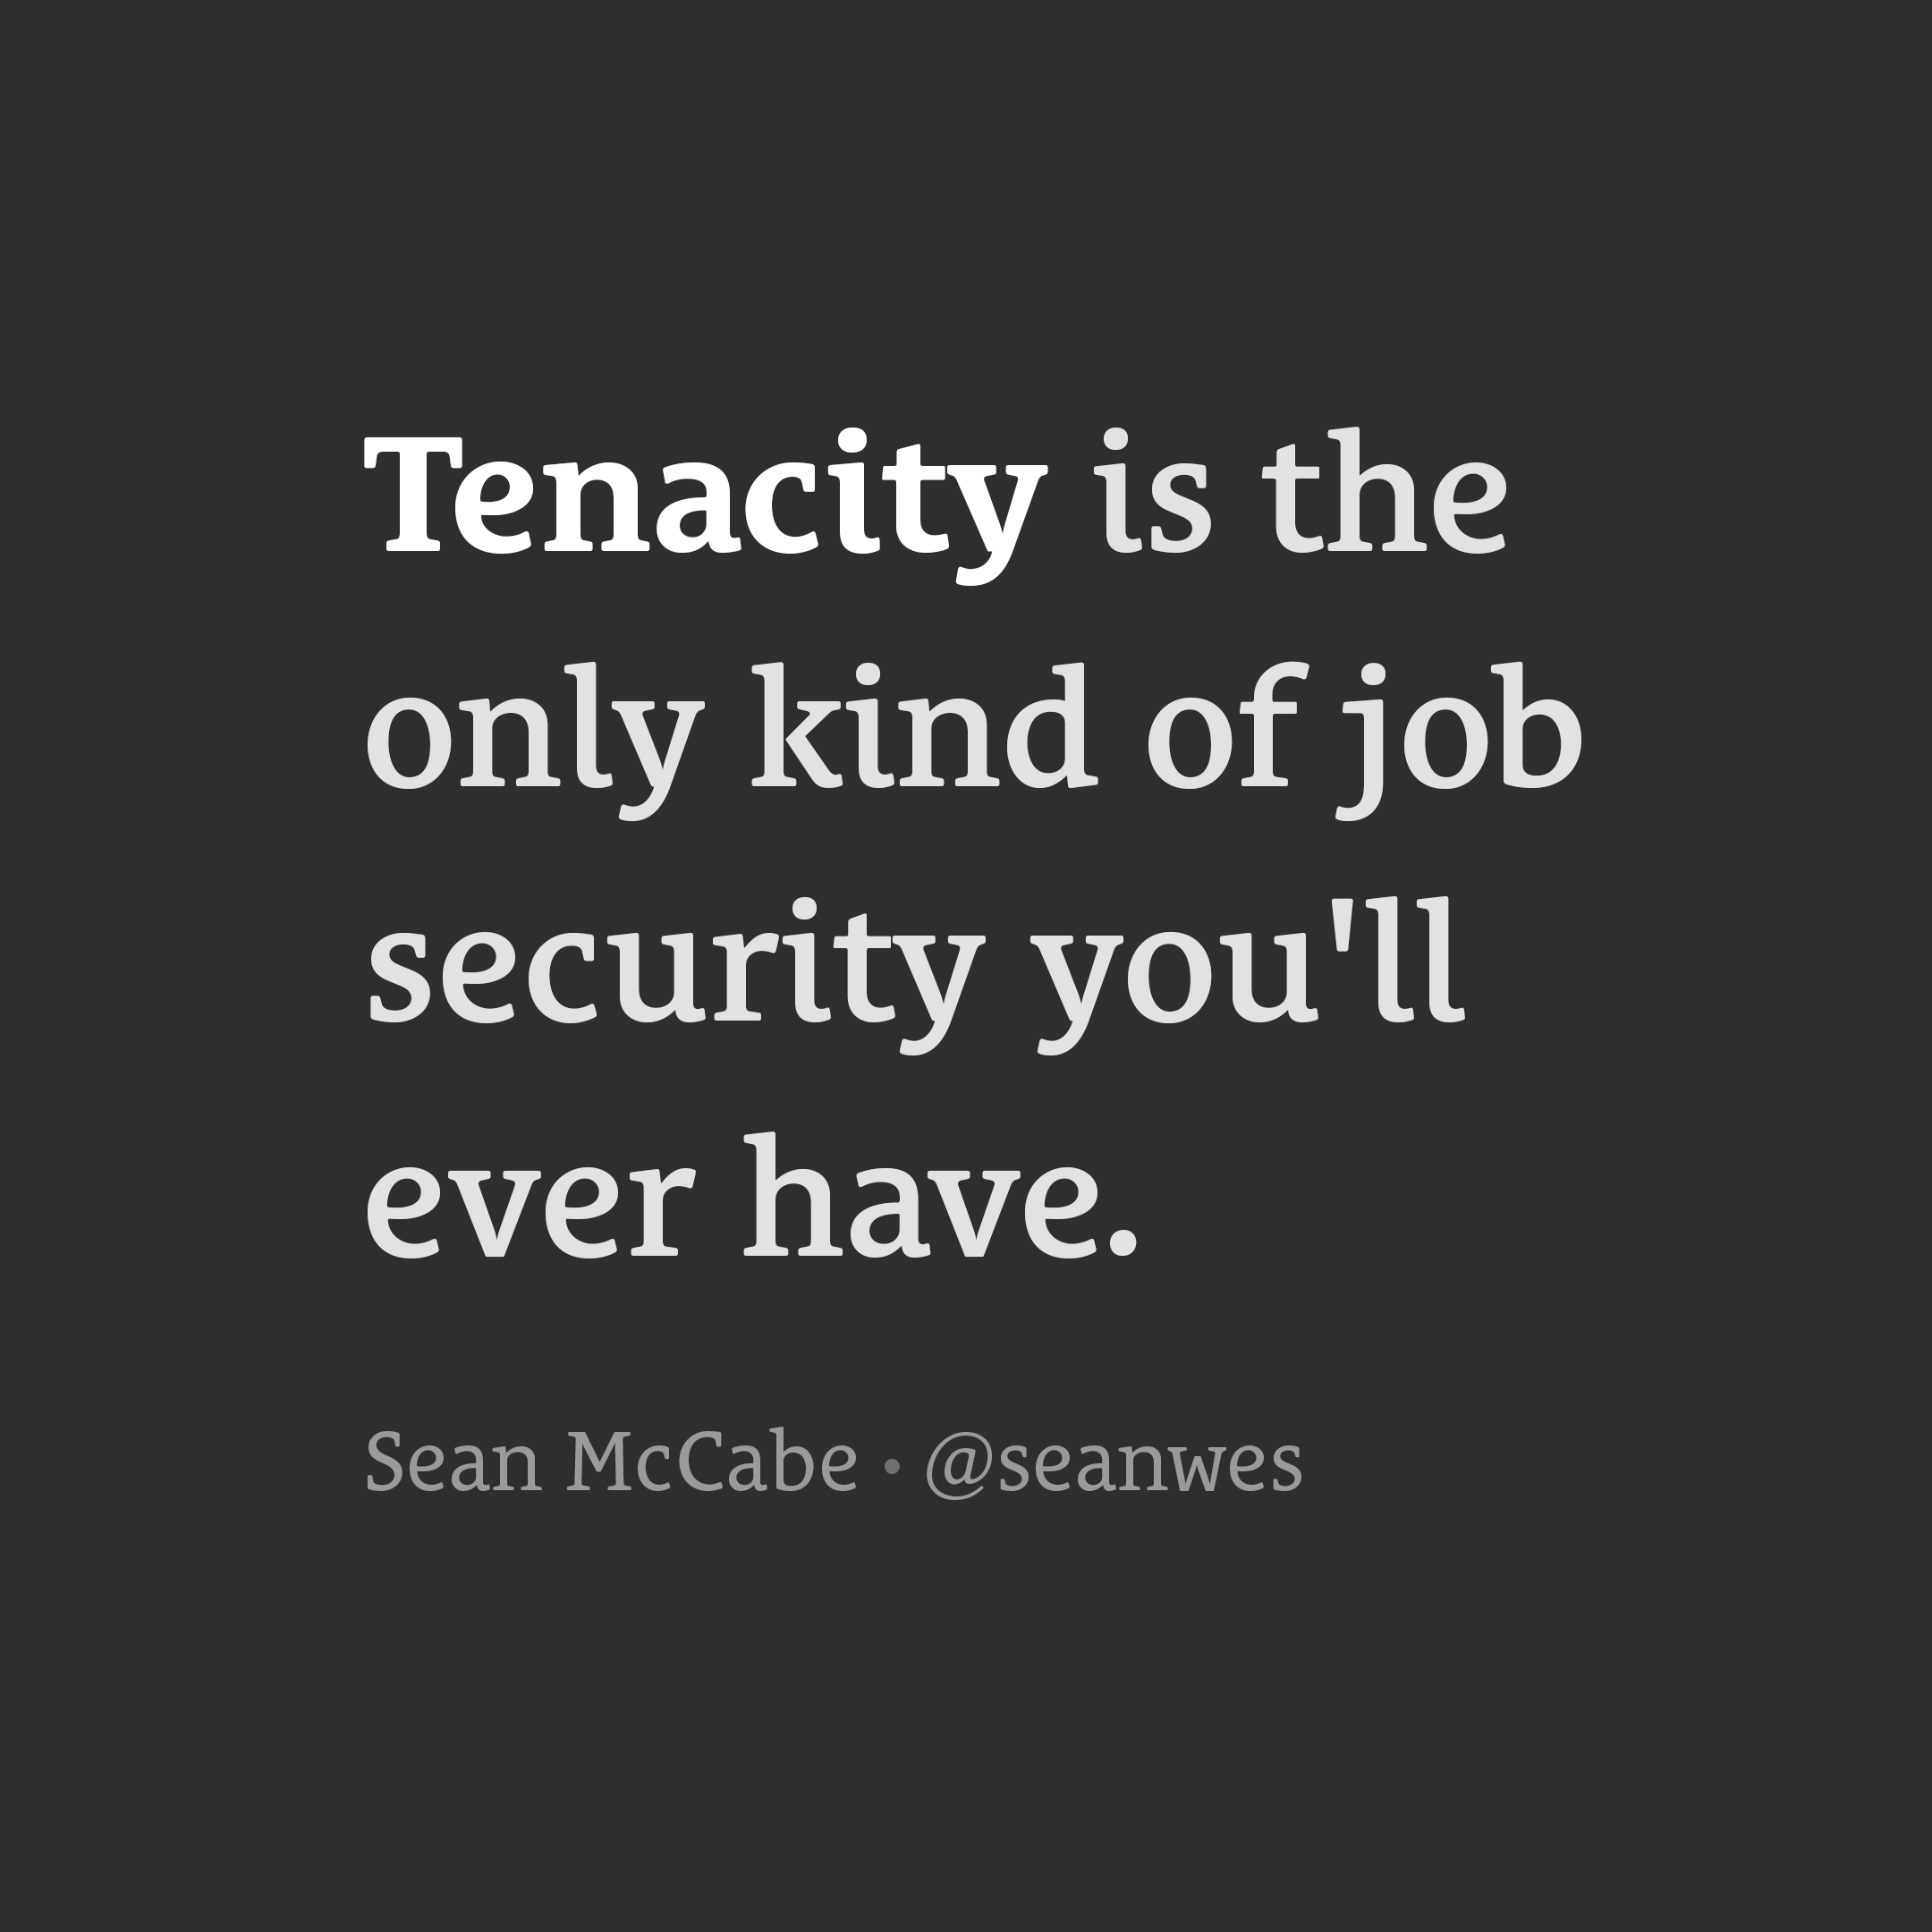 Tenacity is the only kind of job security you'll ever have.